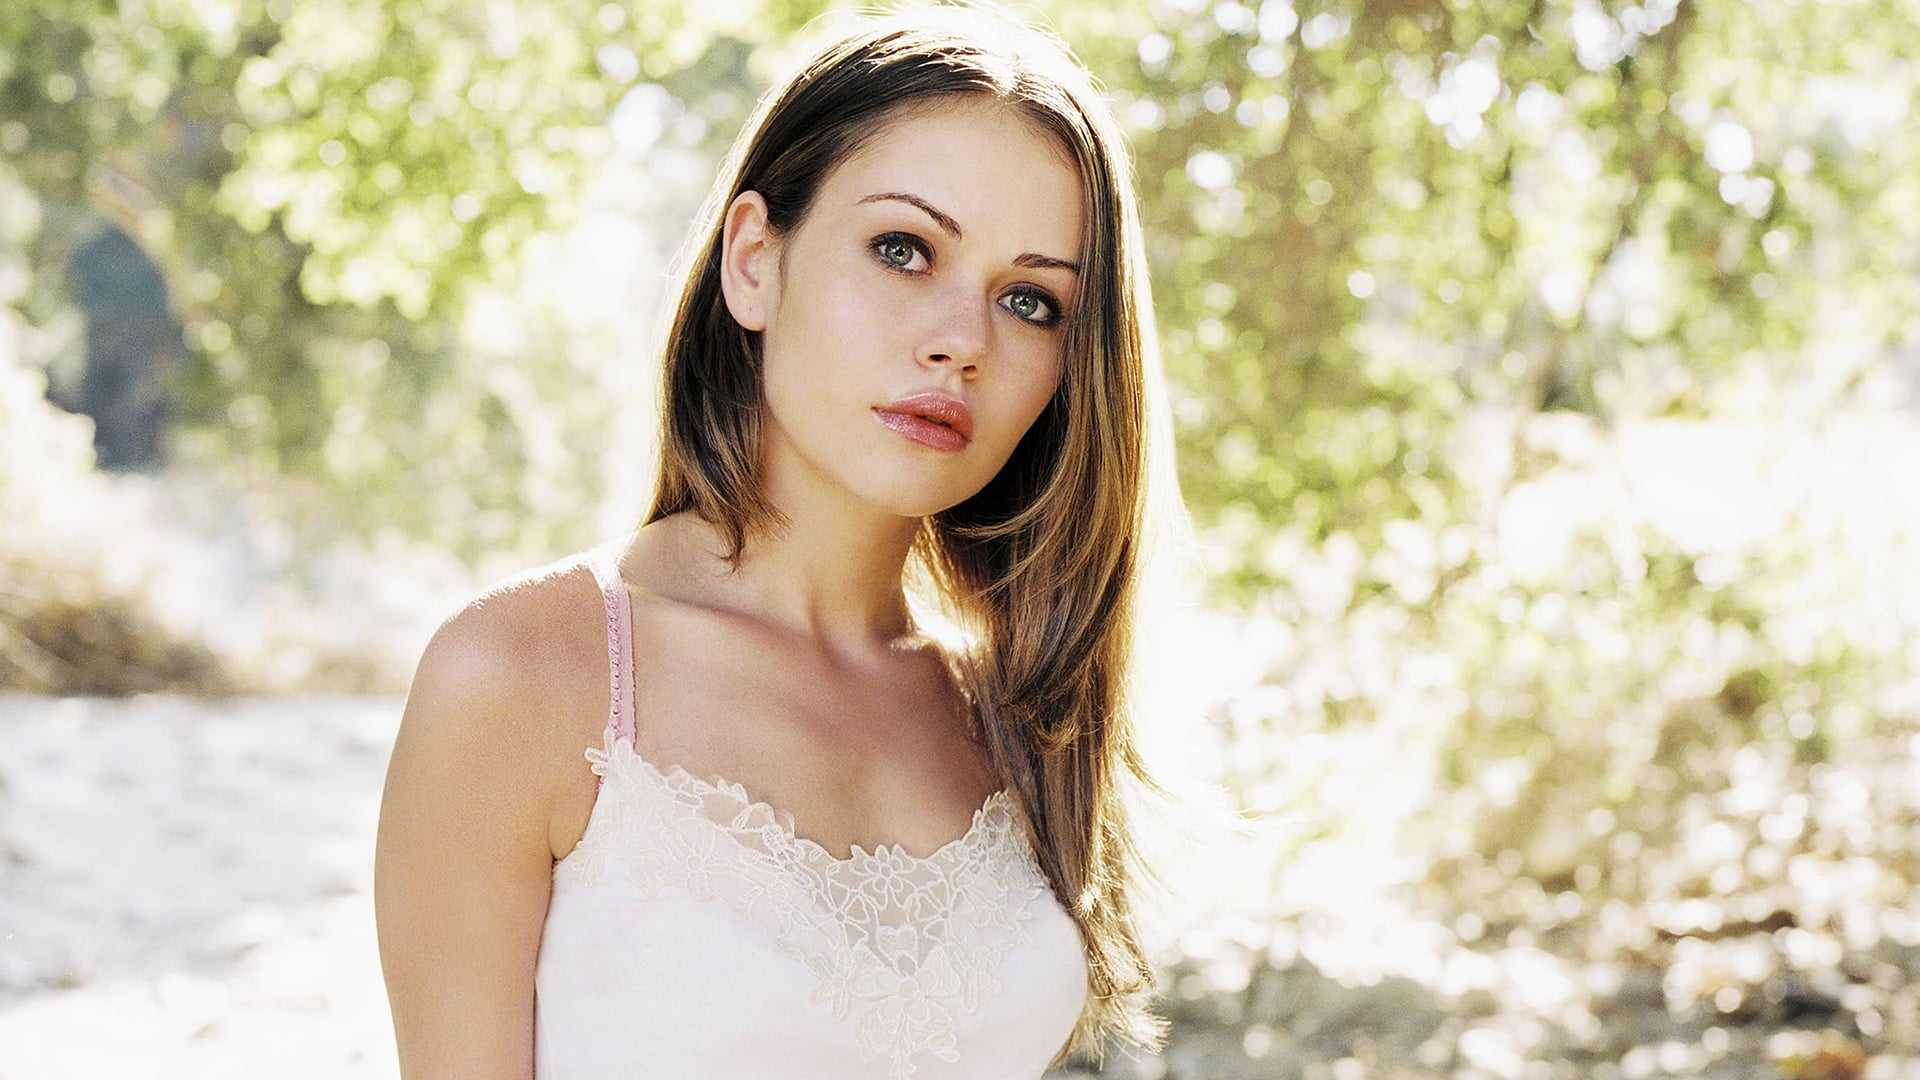 20 alexis dziena wallpapers hd high quality